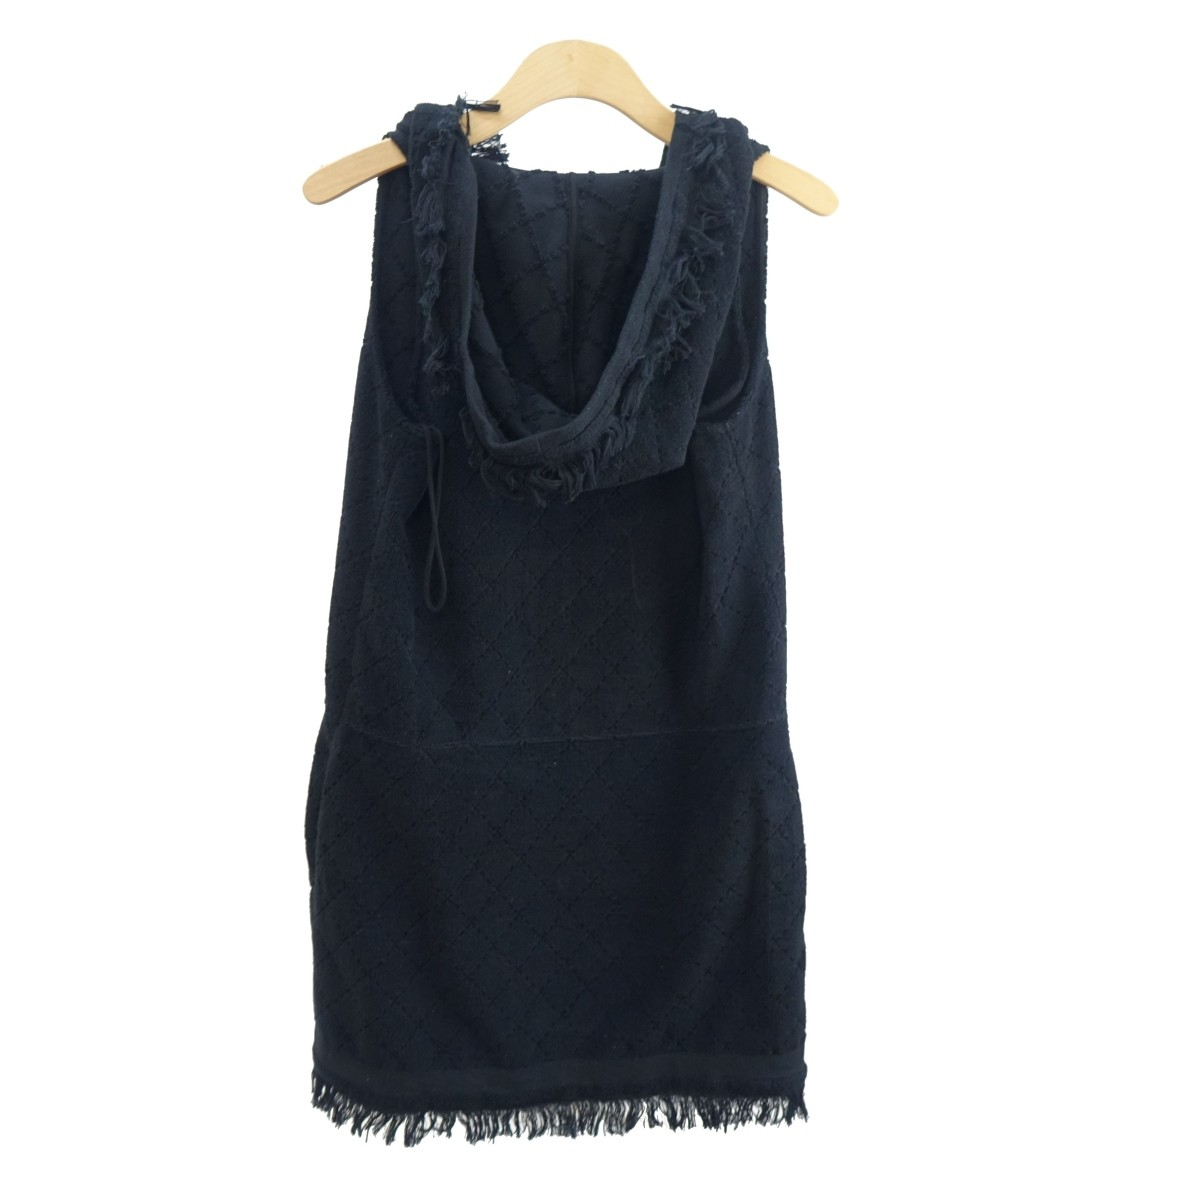 Chanel Black Terrycloth Dress